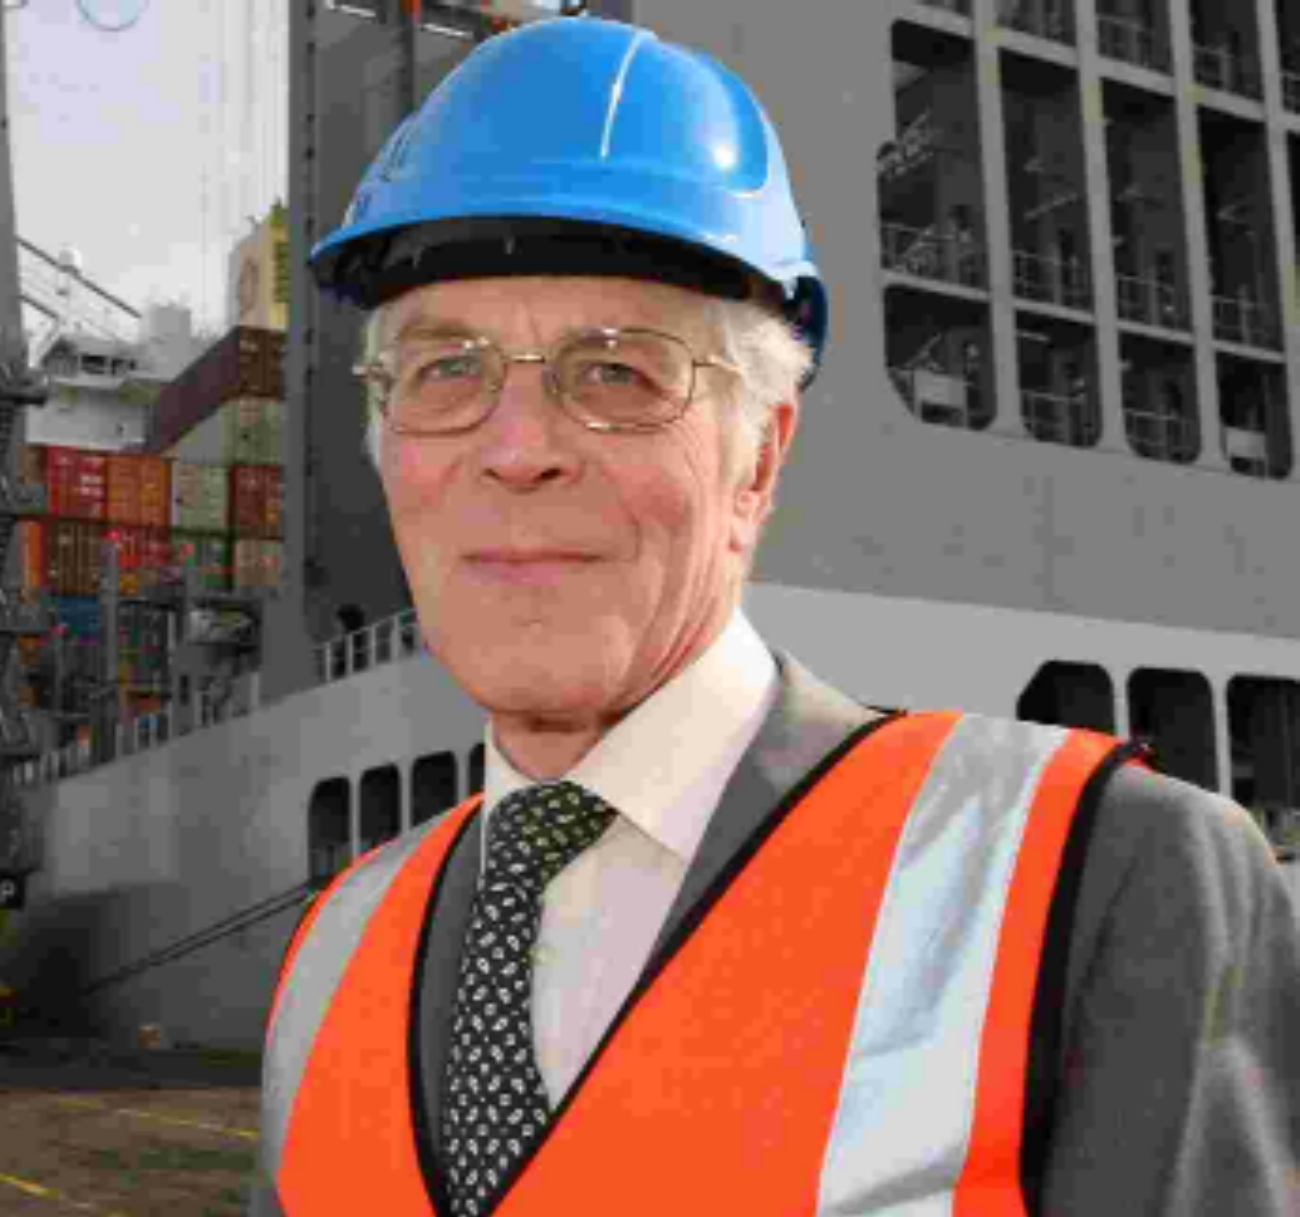 CONFIDENT: John Eynon, managing director of Southampton-based Import Services.